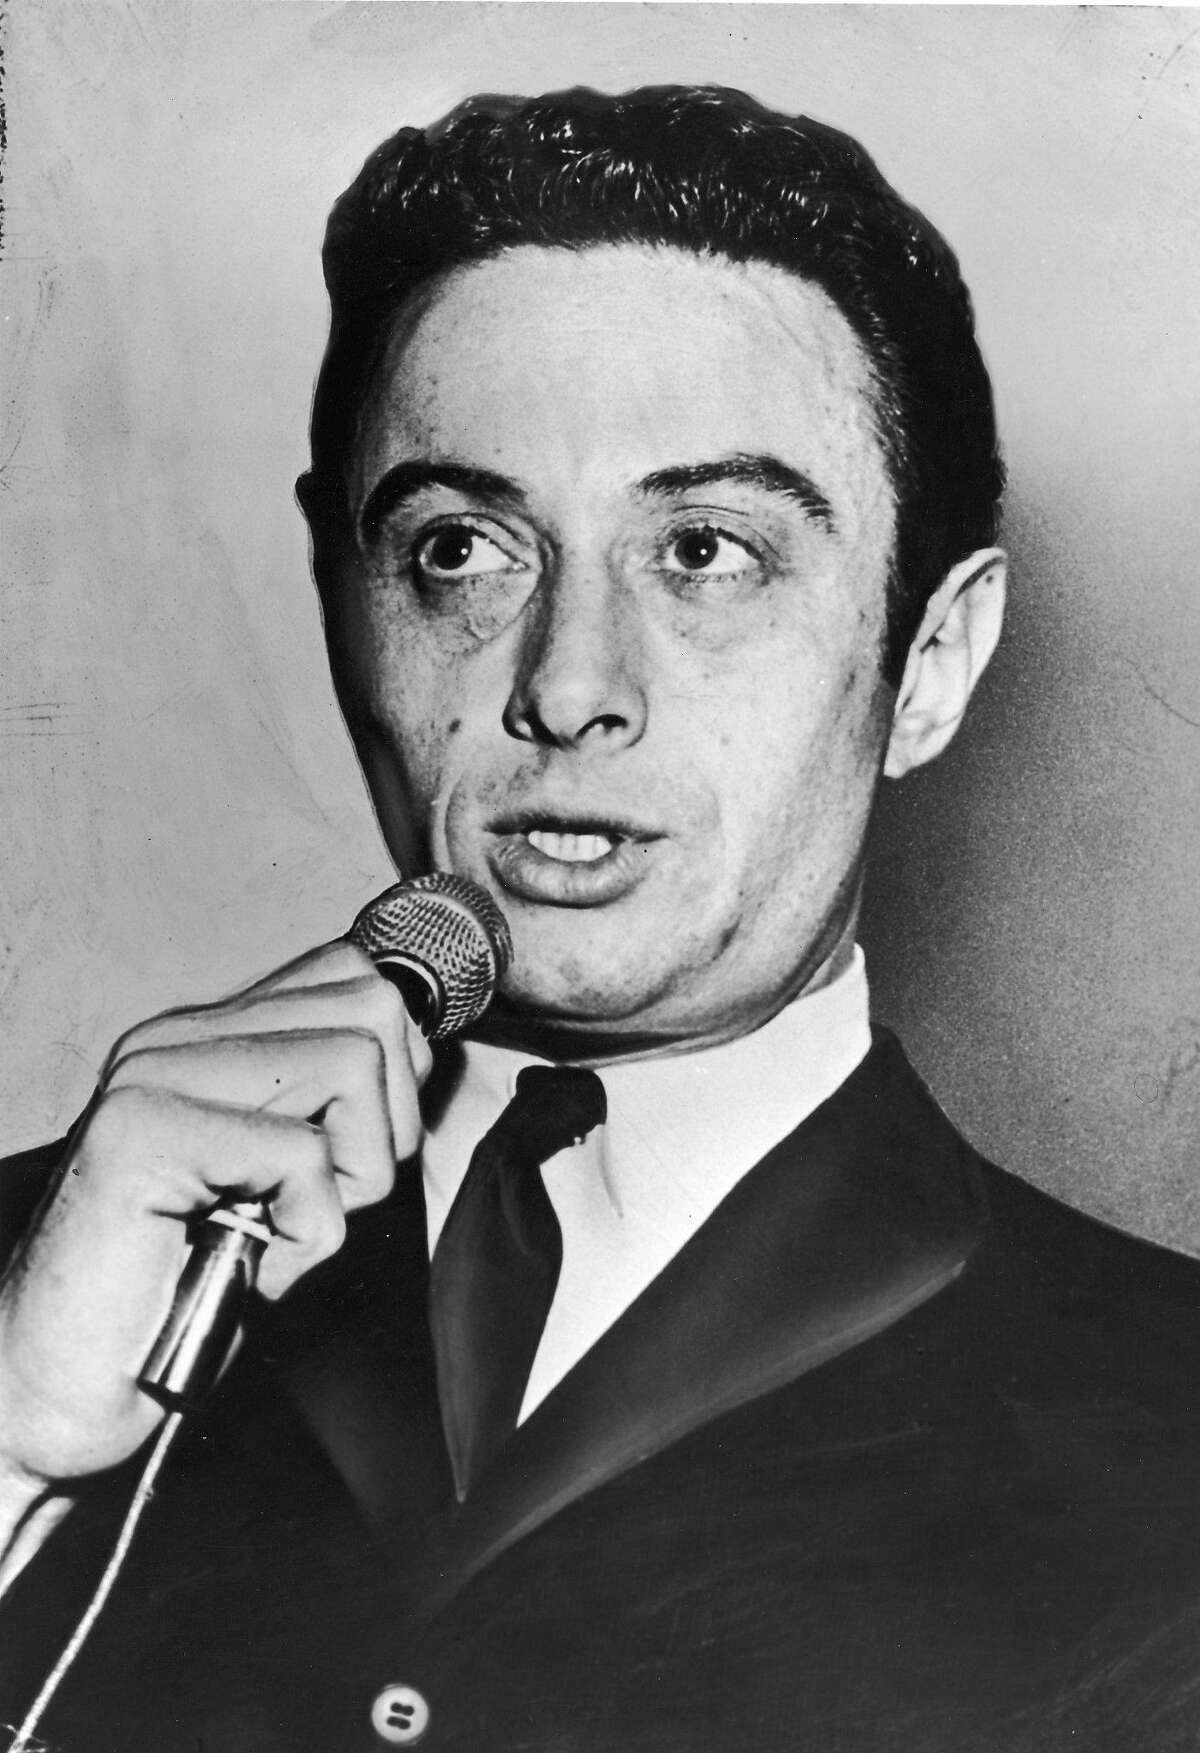 American comedian Lenny Bruce (1925 - 1966) holds a microphone while performing, 1950s. (Photo by Hulton Archive/Getty Images)